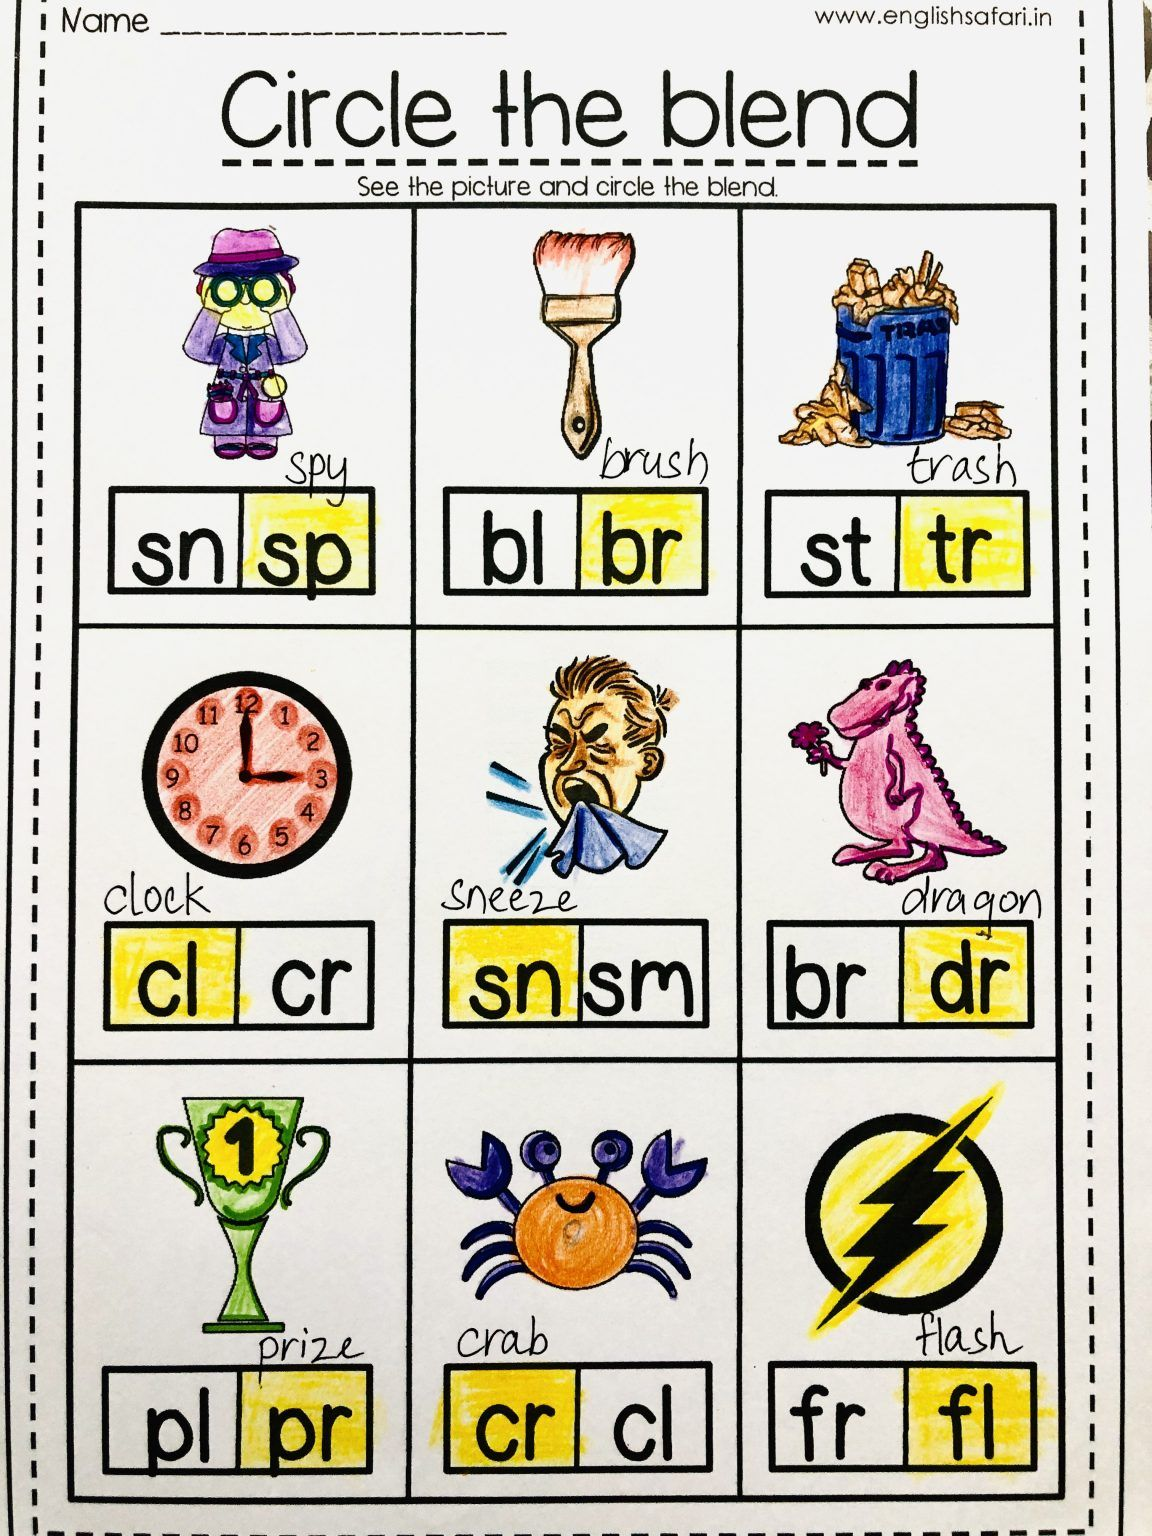 Consonant Blend Words Worksheets Free Englishsafari